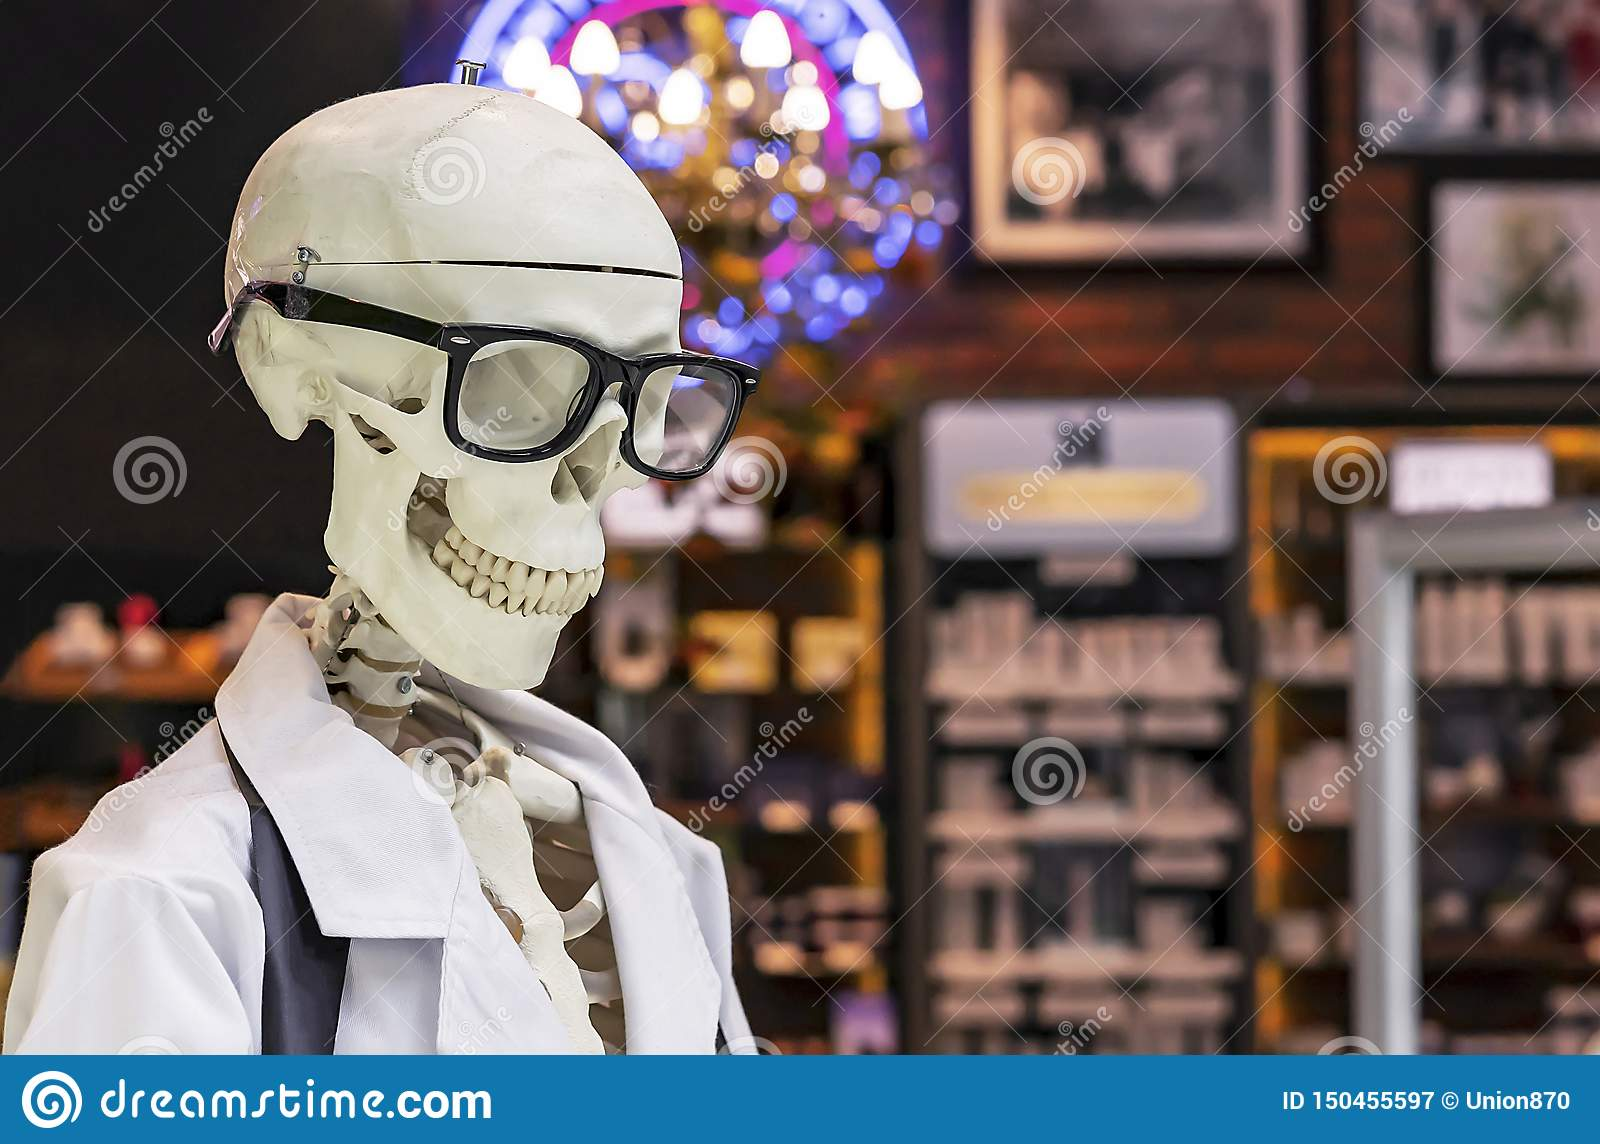 Human skeleton in a white medical gown and black glasses